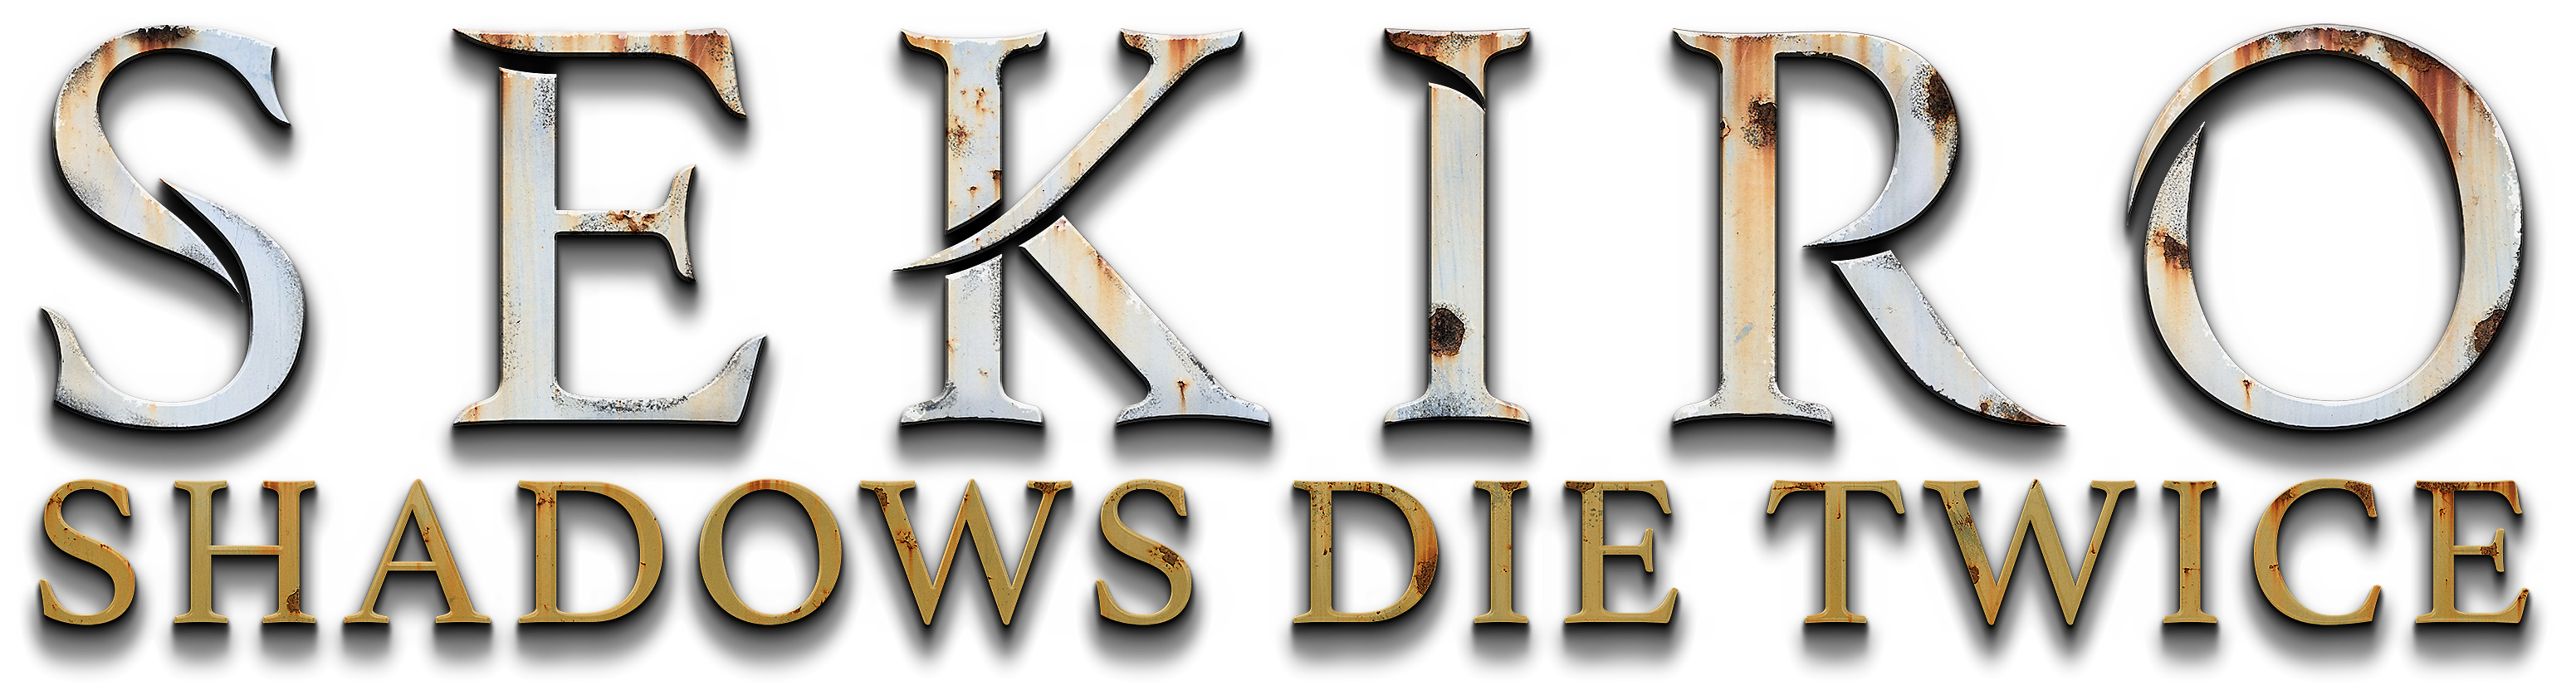 Sekiro Shadows Die Twice logo